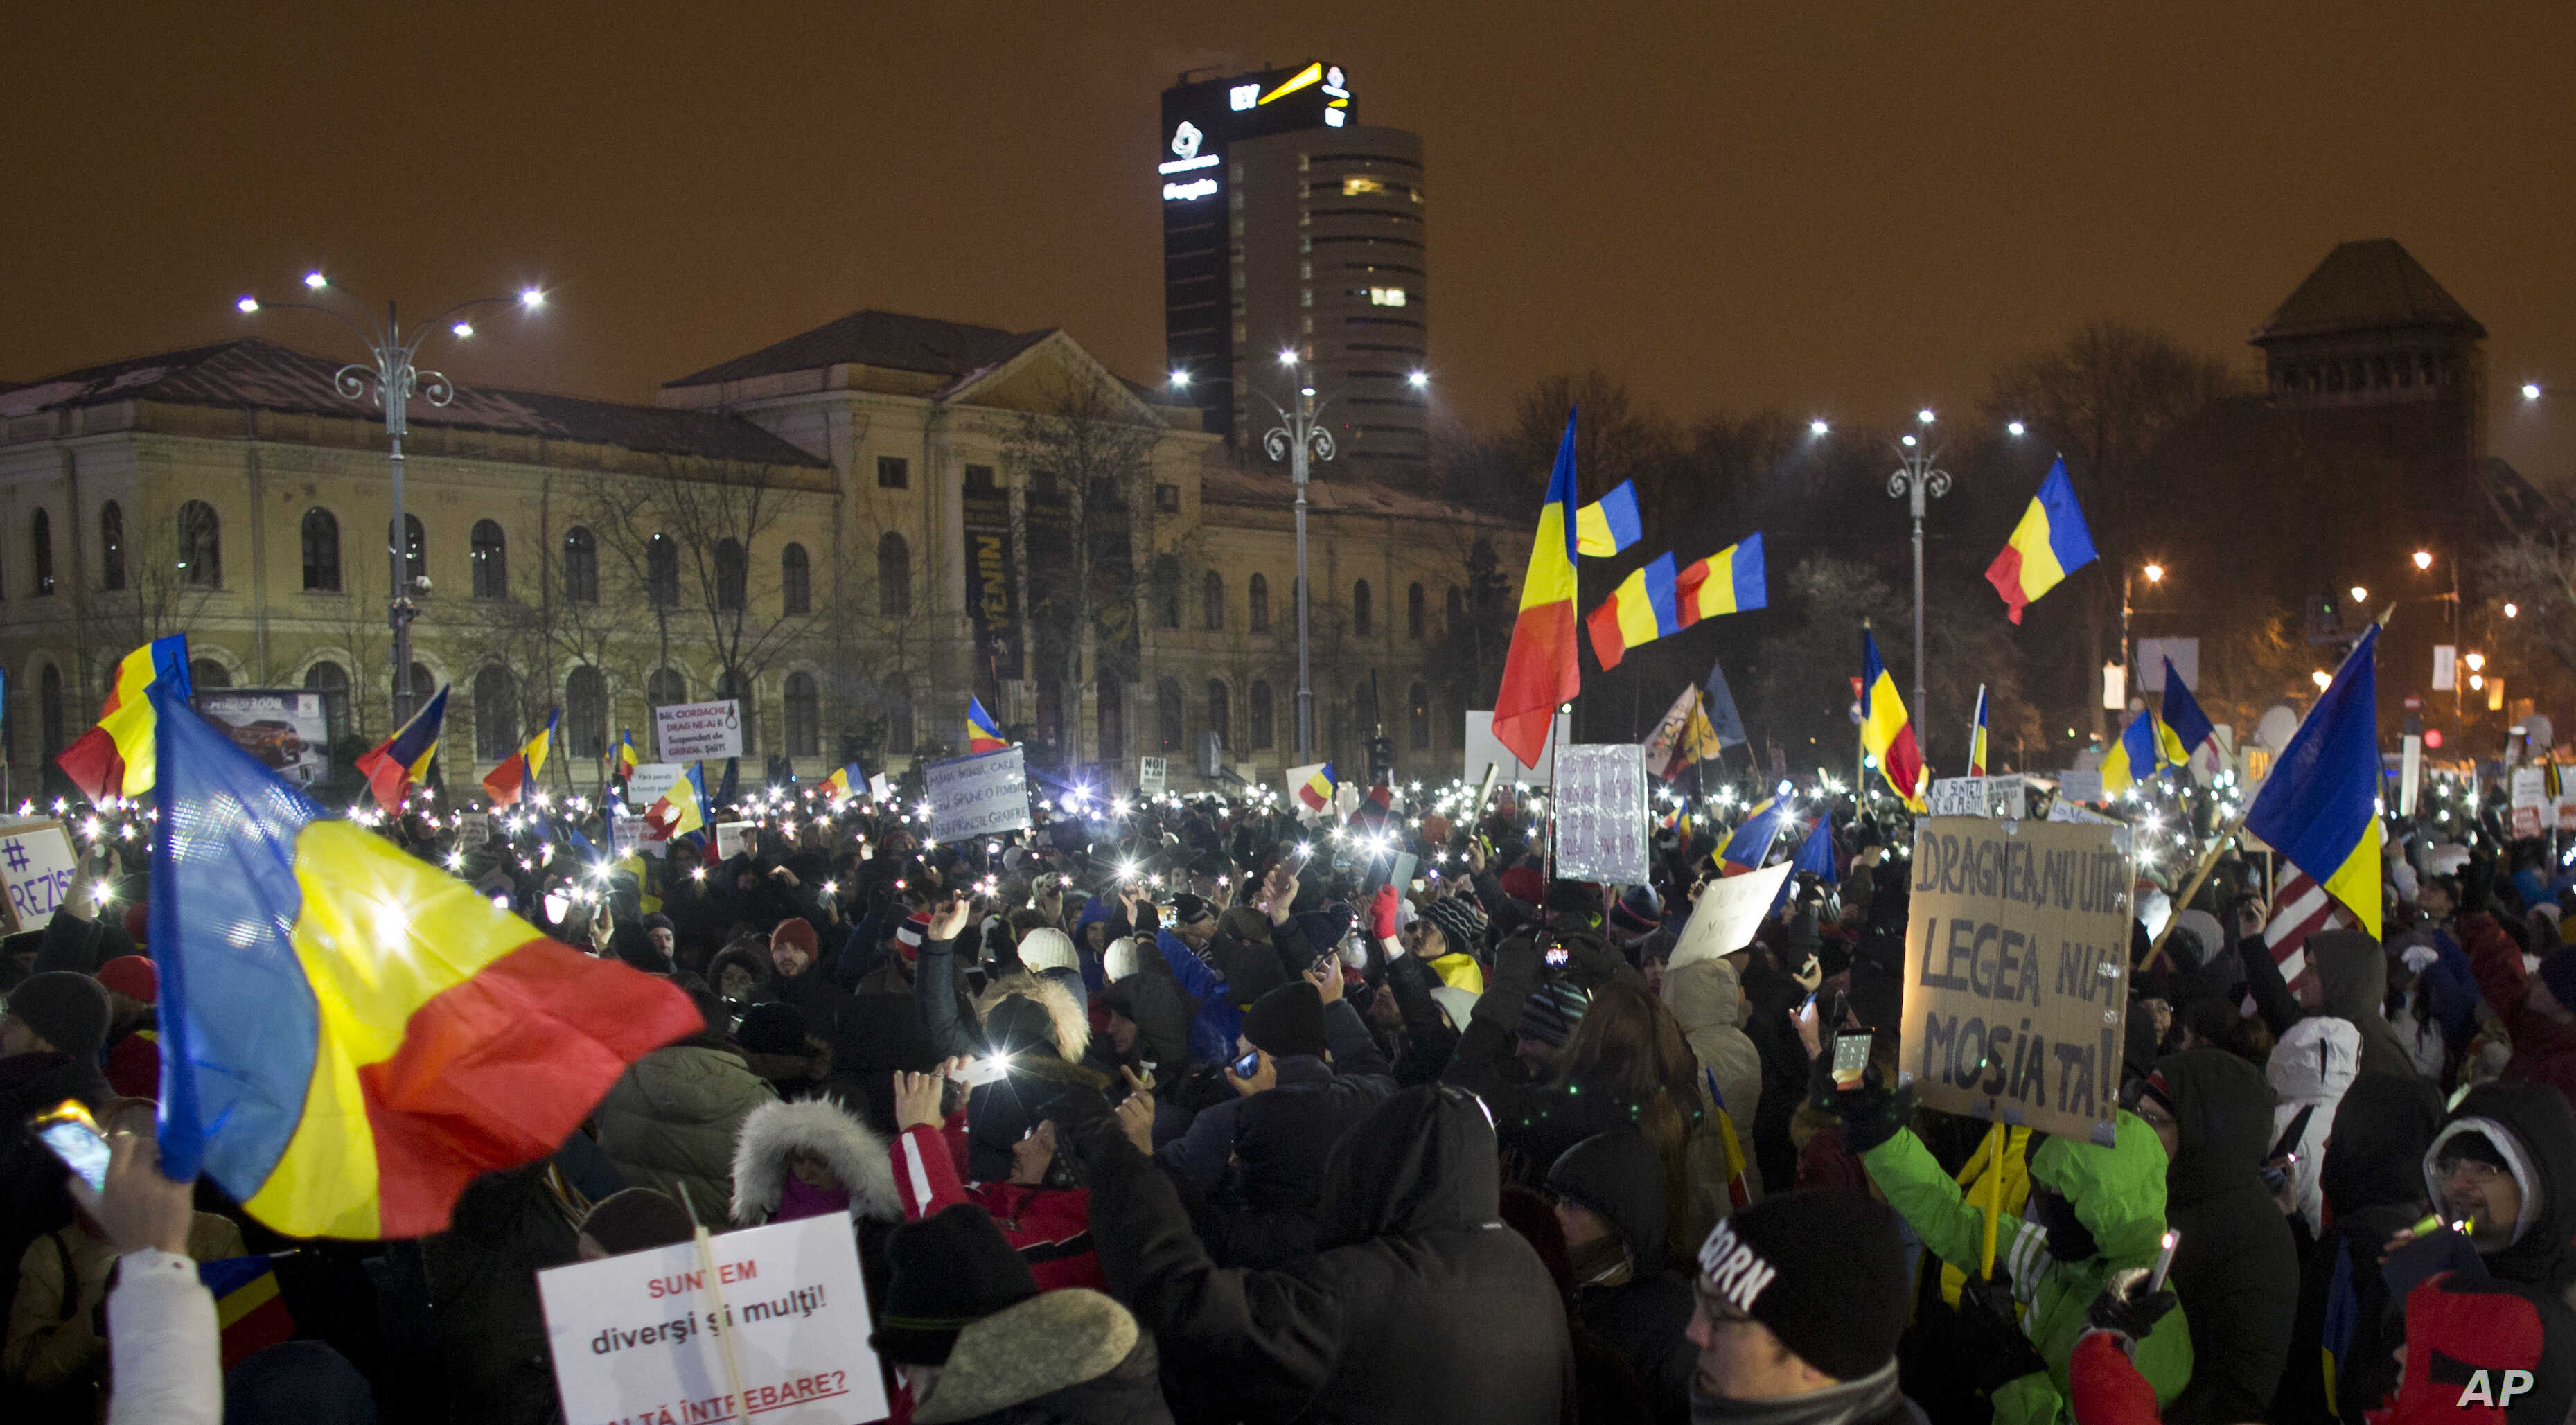 Protesters lit torches and wave flags as they gather outside the government building in Bucharest, Romania, Feb. 11, 2017.